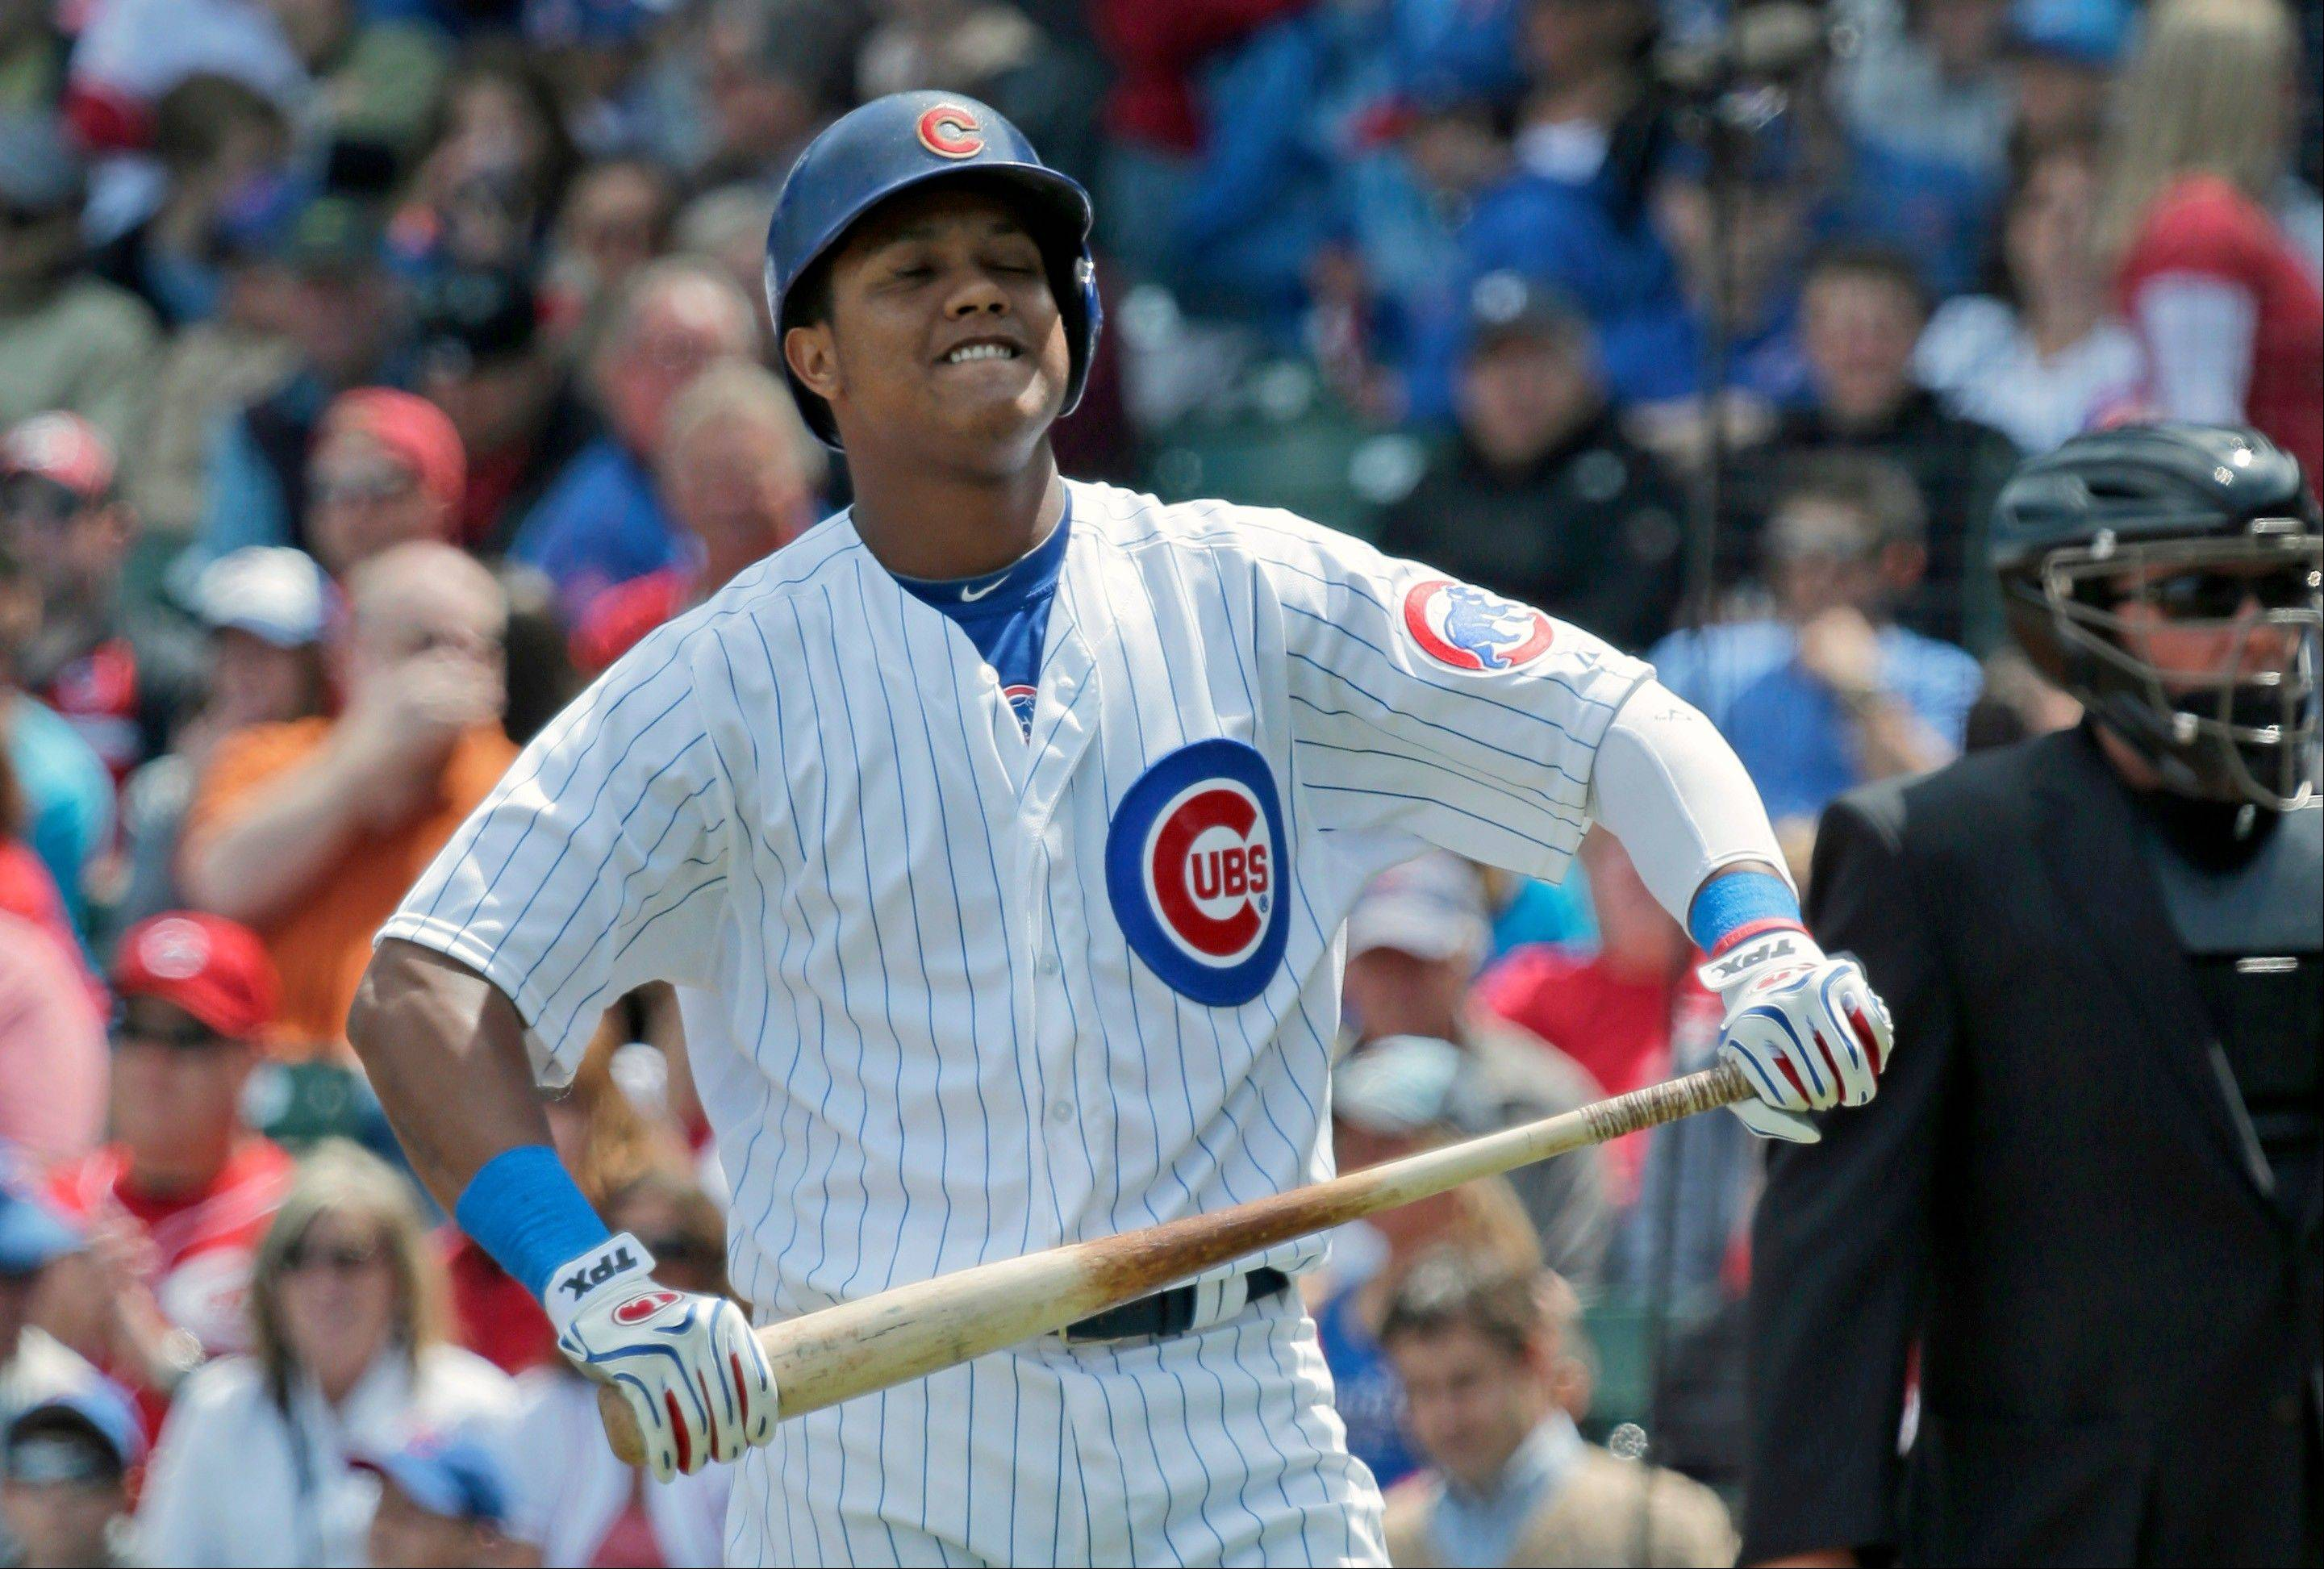 Starlin Castro drove in just 44 runs last year.